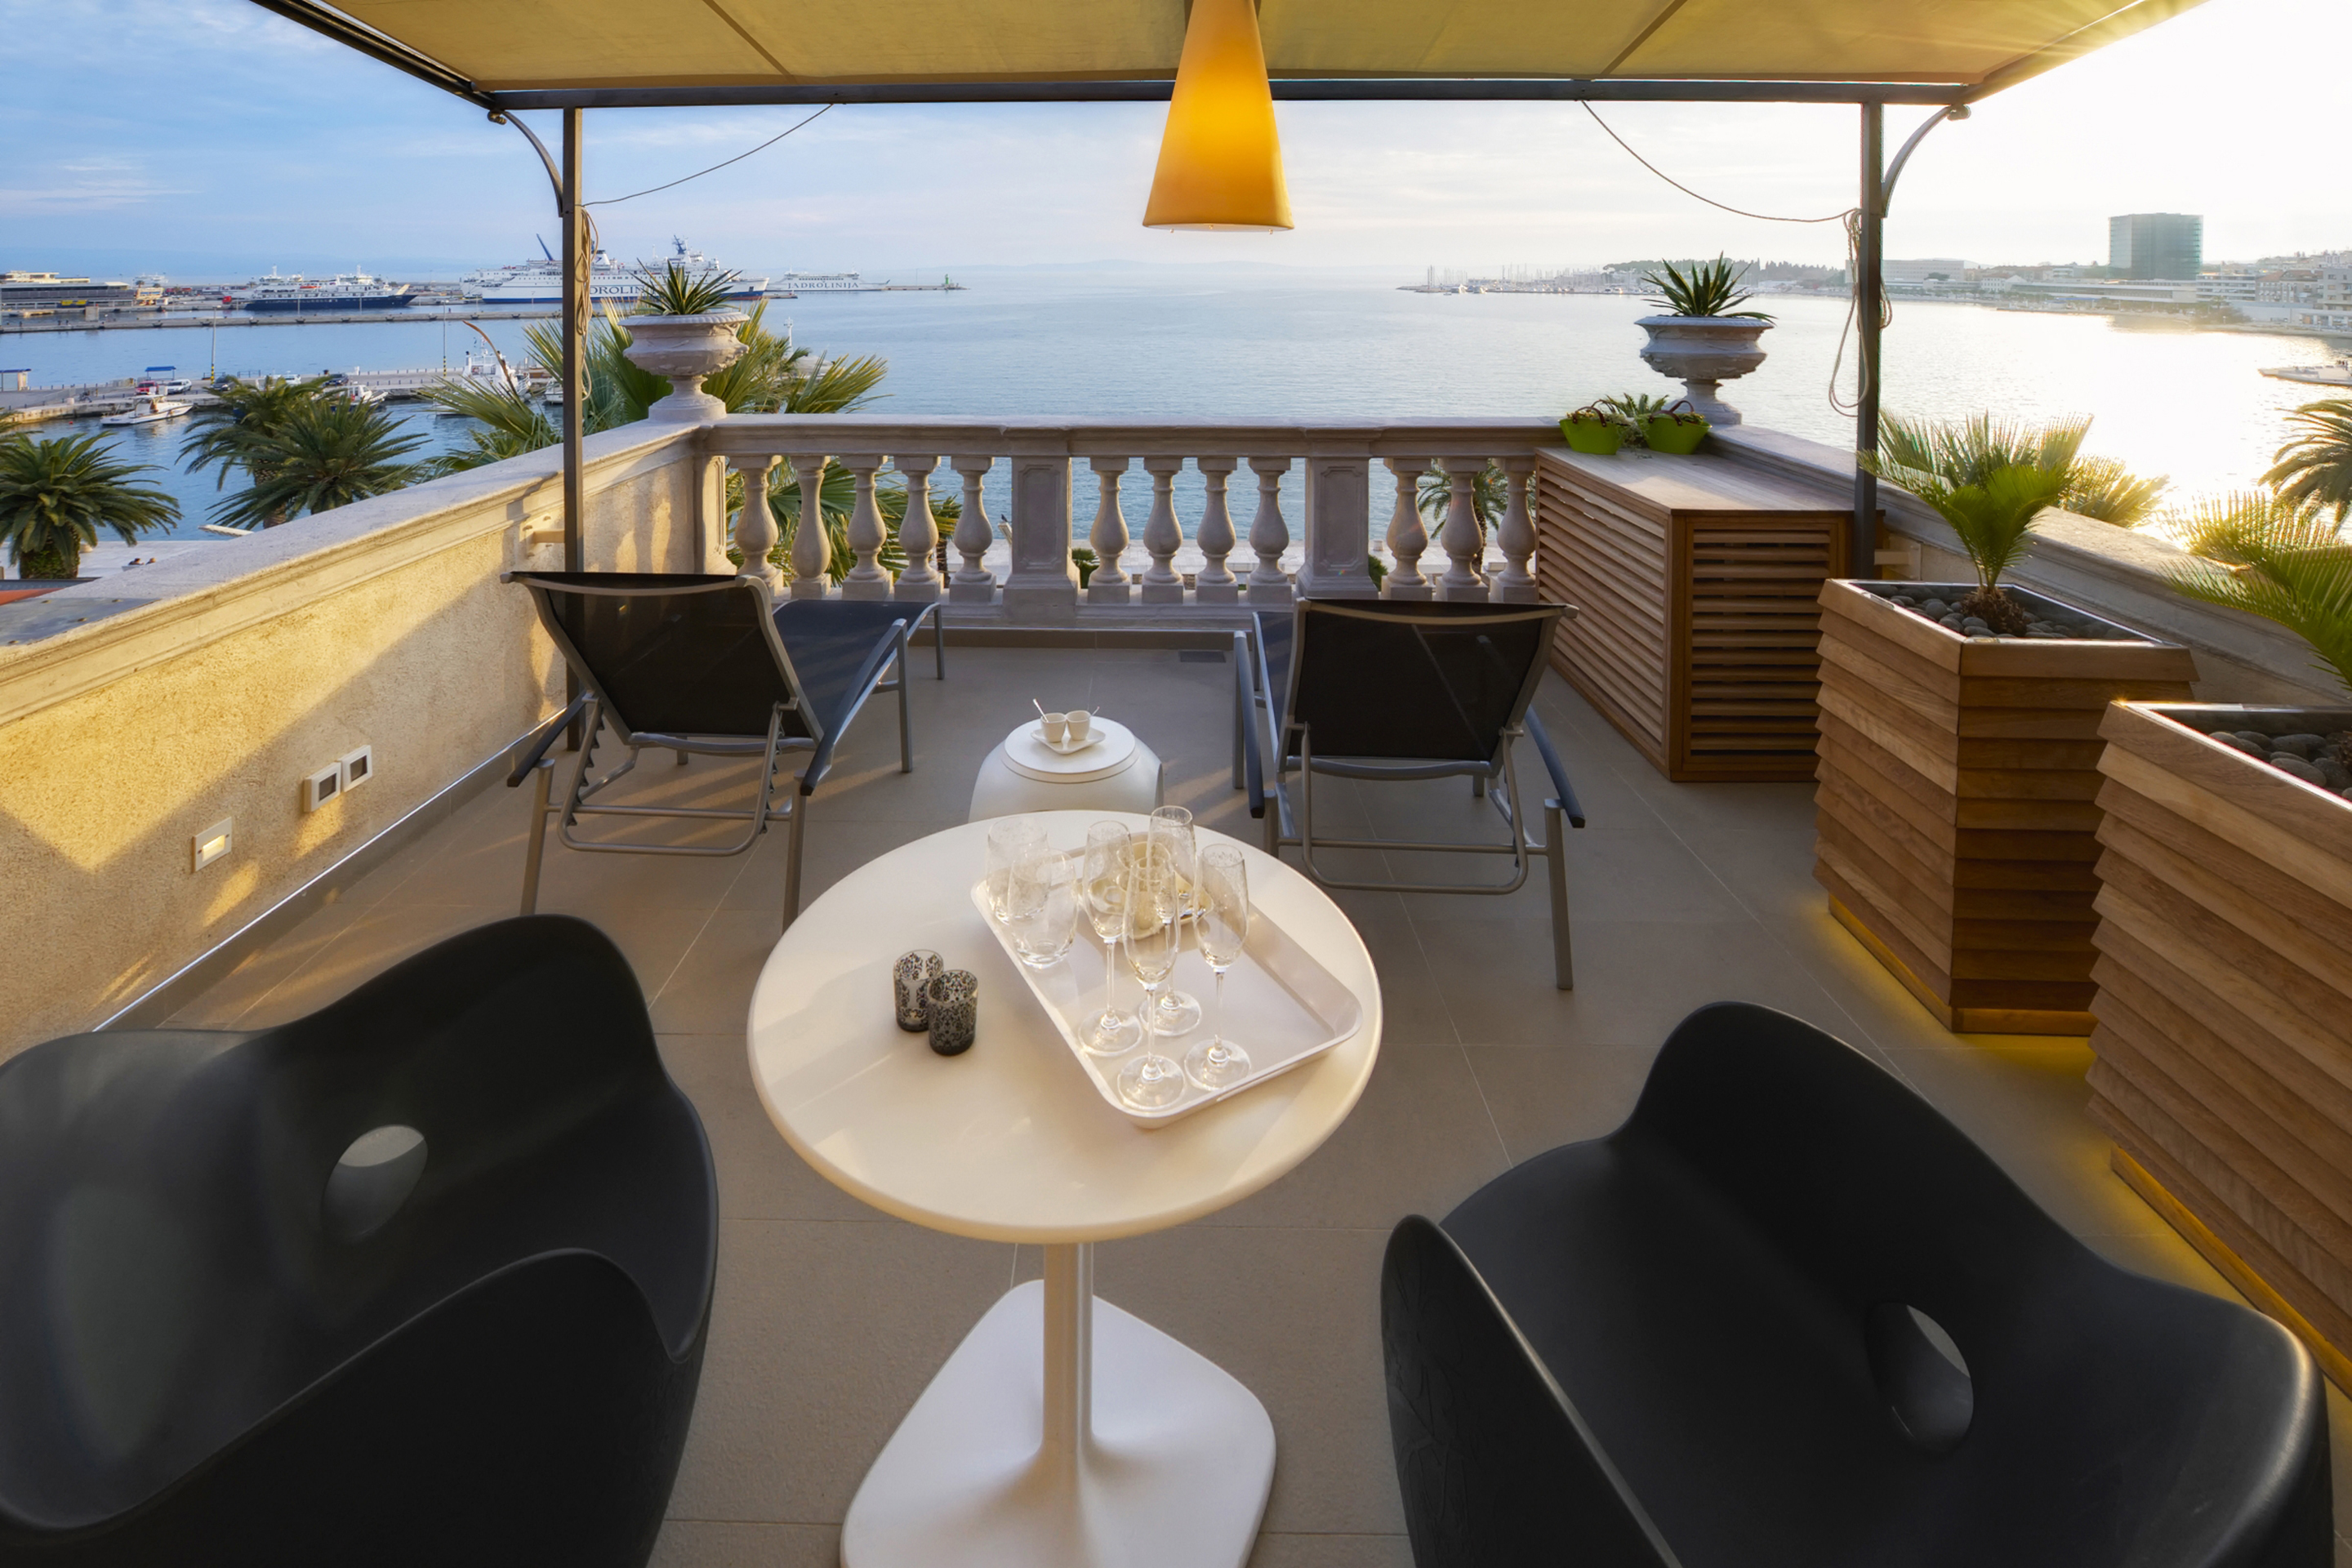 Riva Luxury Suite terrace with sea view